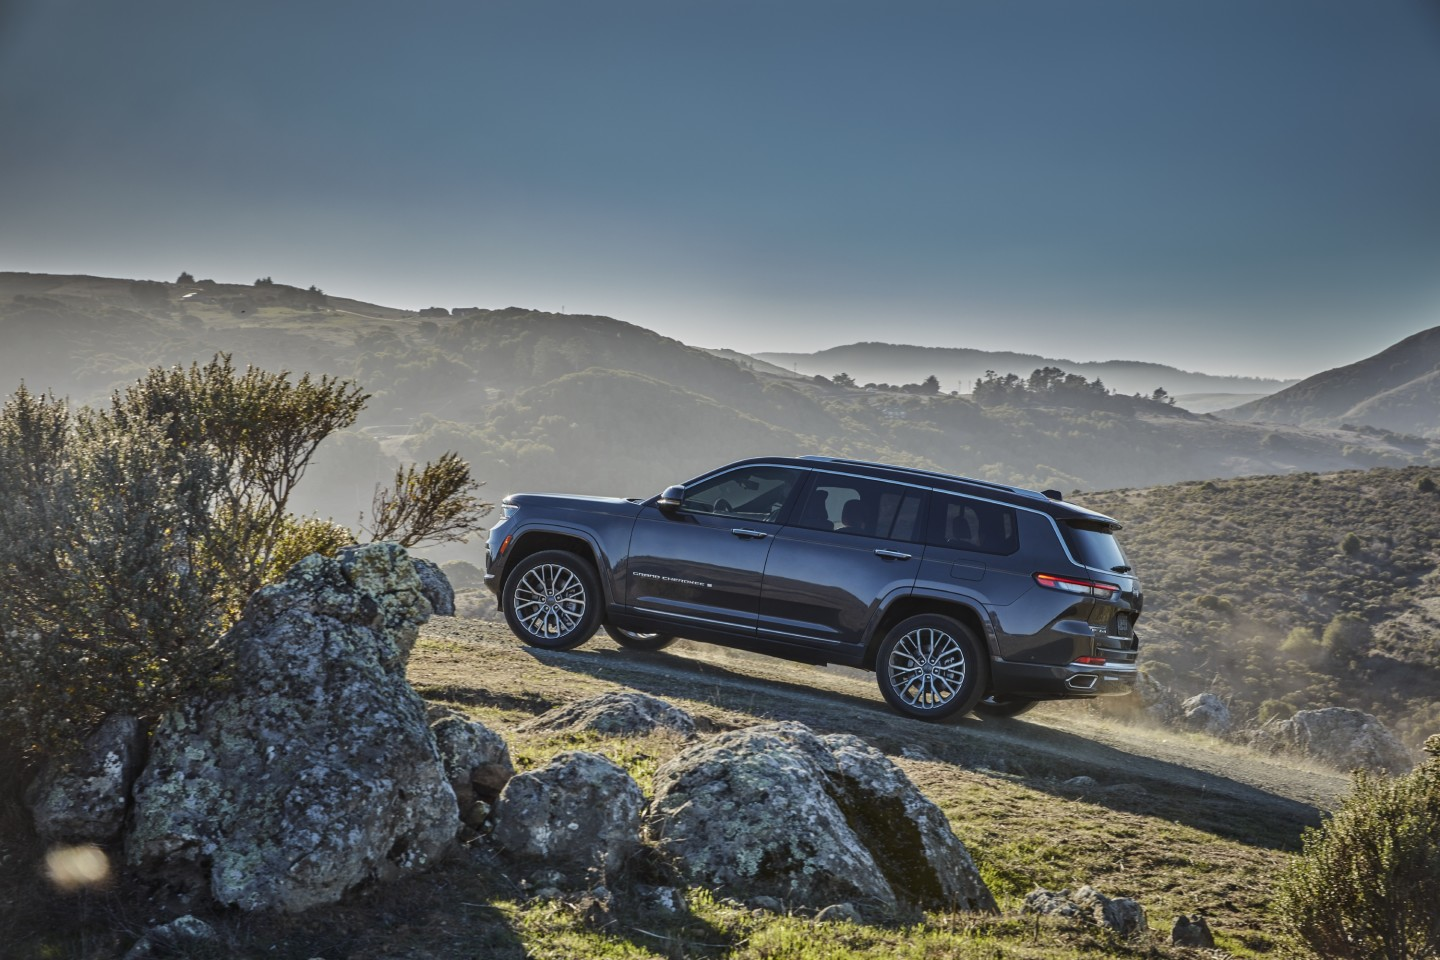 Jeep promises that the all-new Grand Cherokee is upgraded for both road and off-road driving